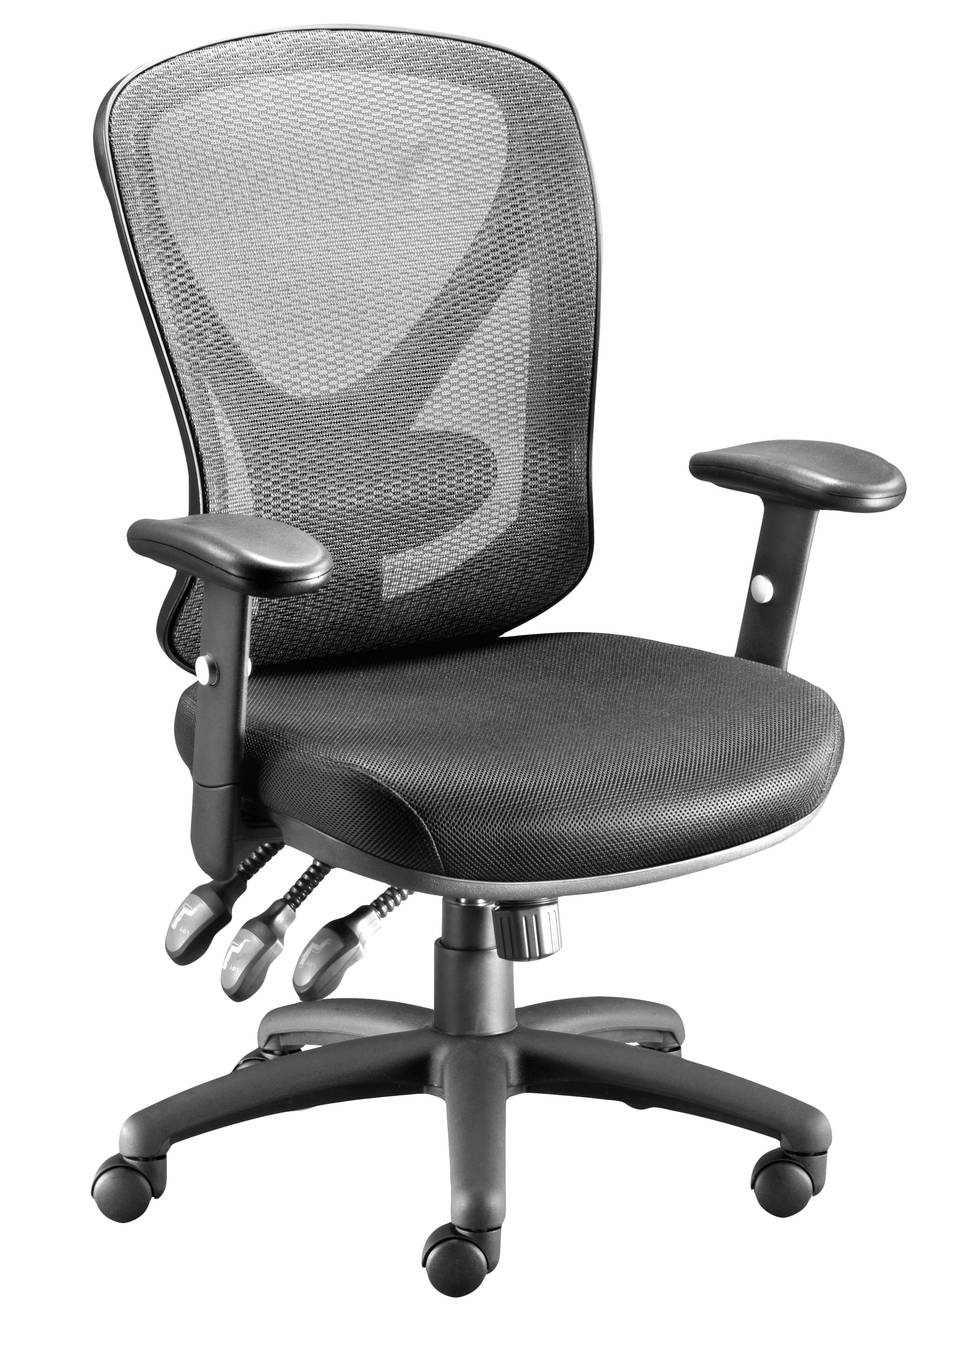 Desk stools are perfect for comfortable work best computer chairs - Staples Carder Mesh Office Chair Black